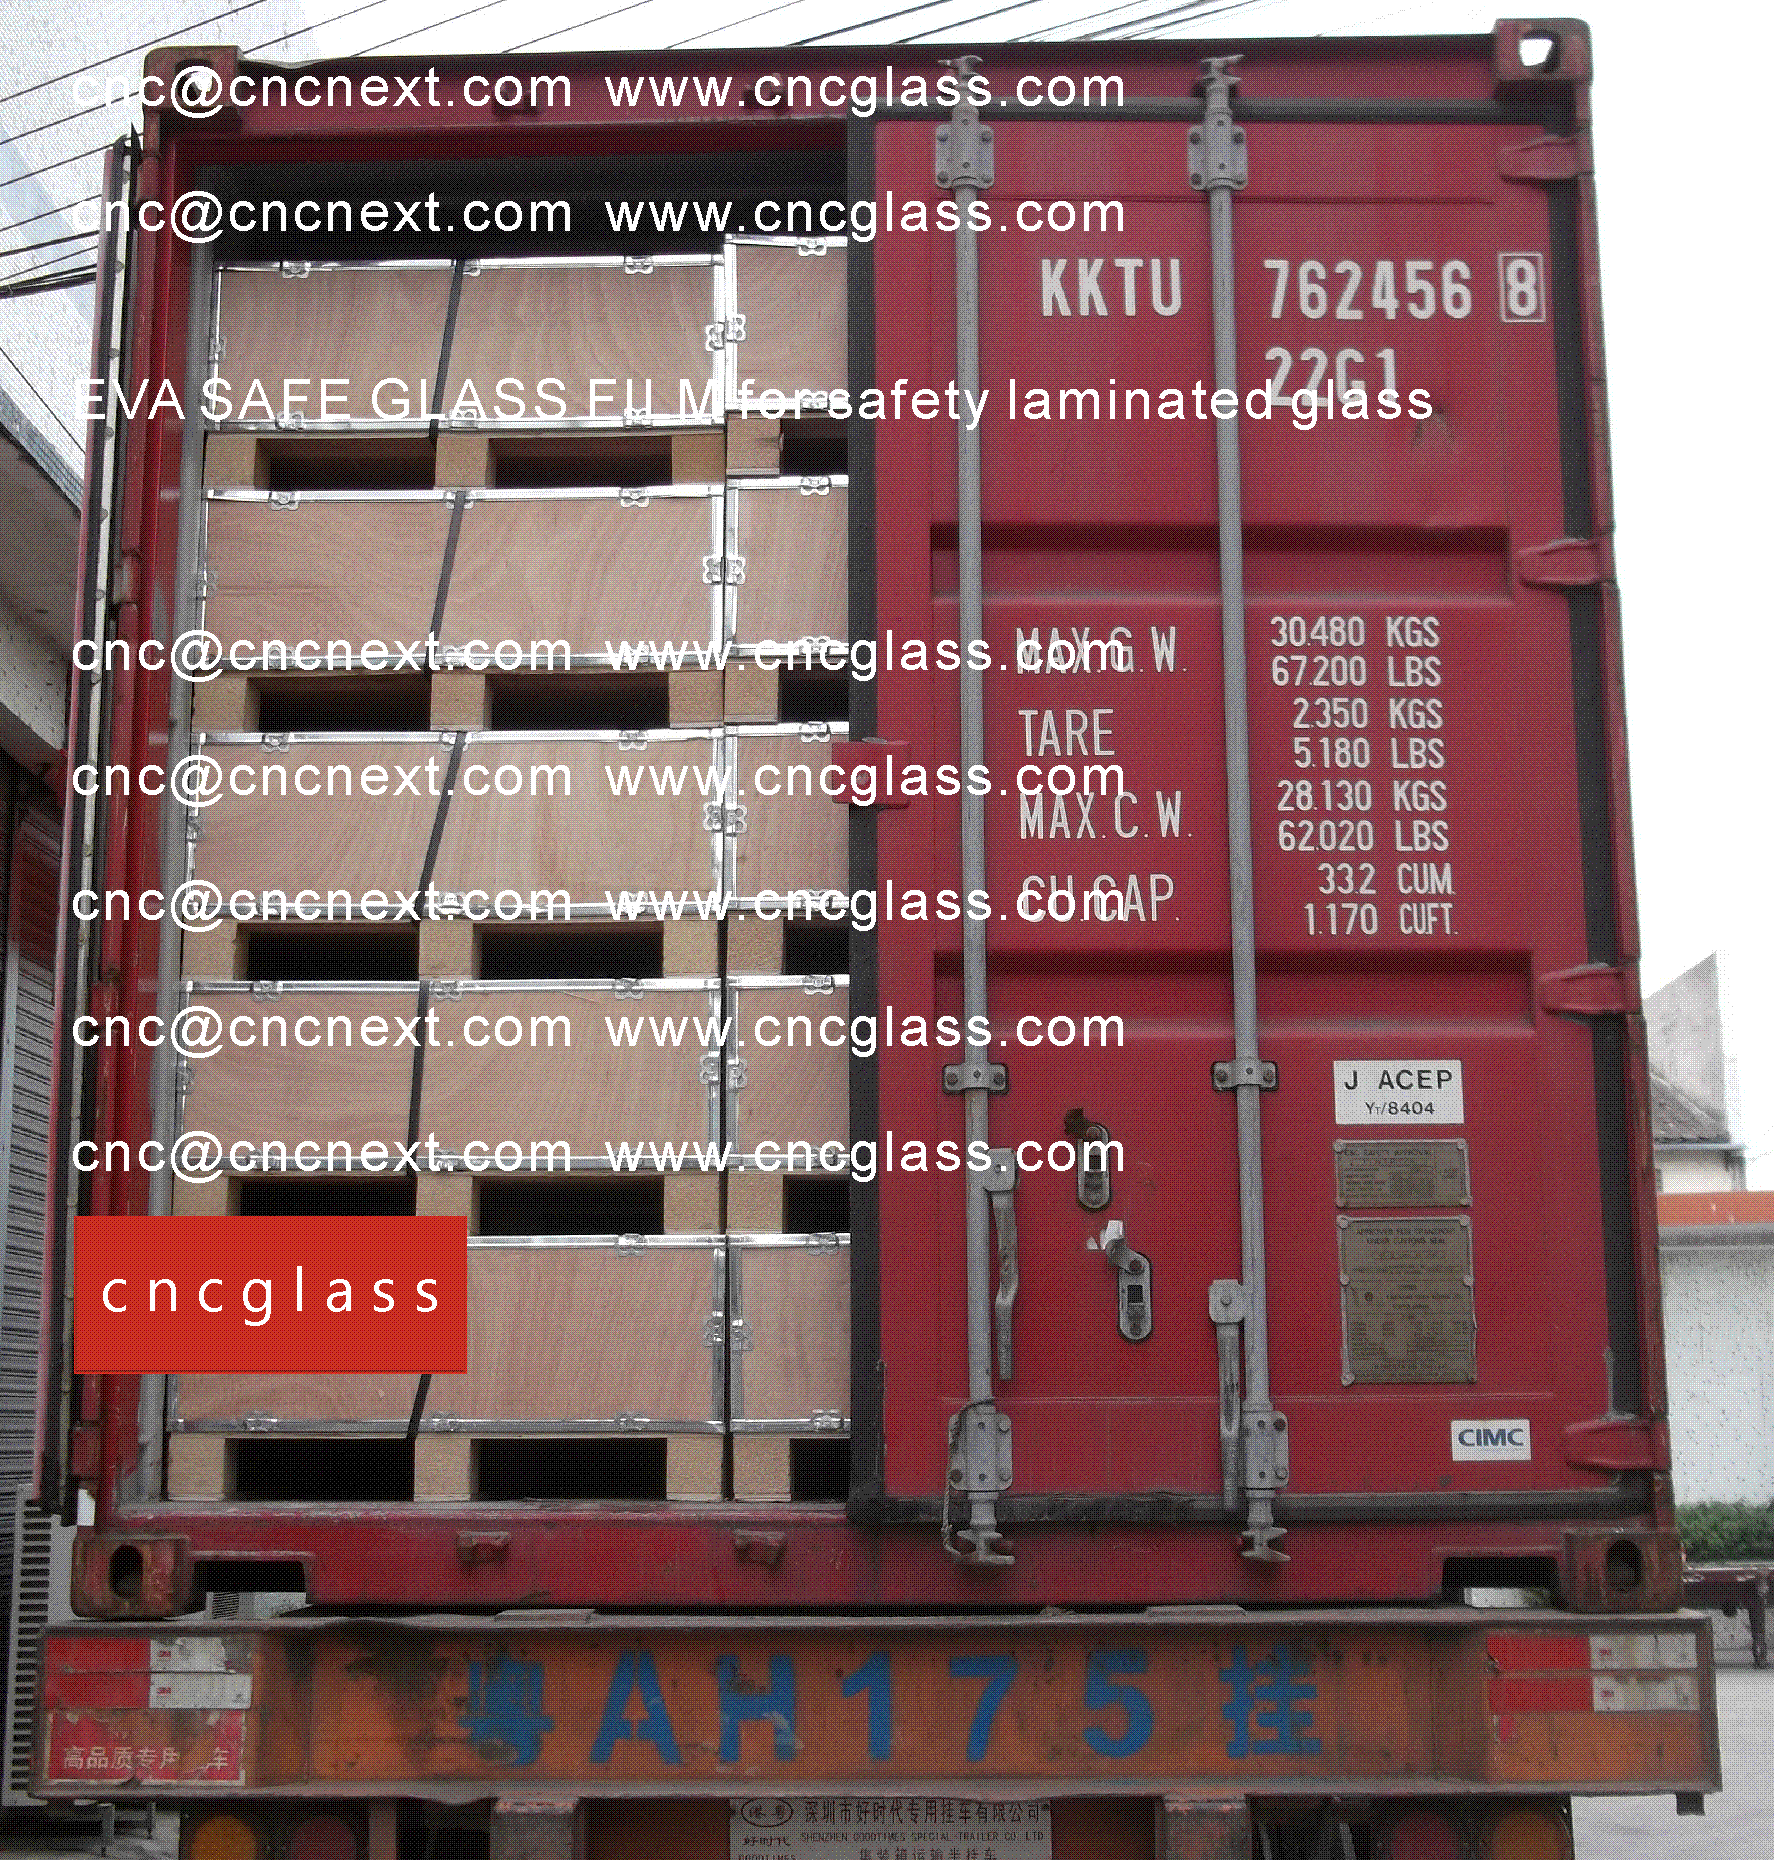 006 EVA SAFE GLASS FILM LOADING CONTAINER (SAFETY LAMINATED GLASS)